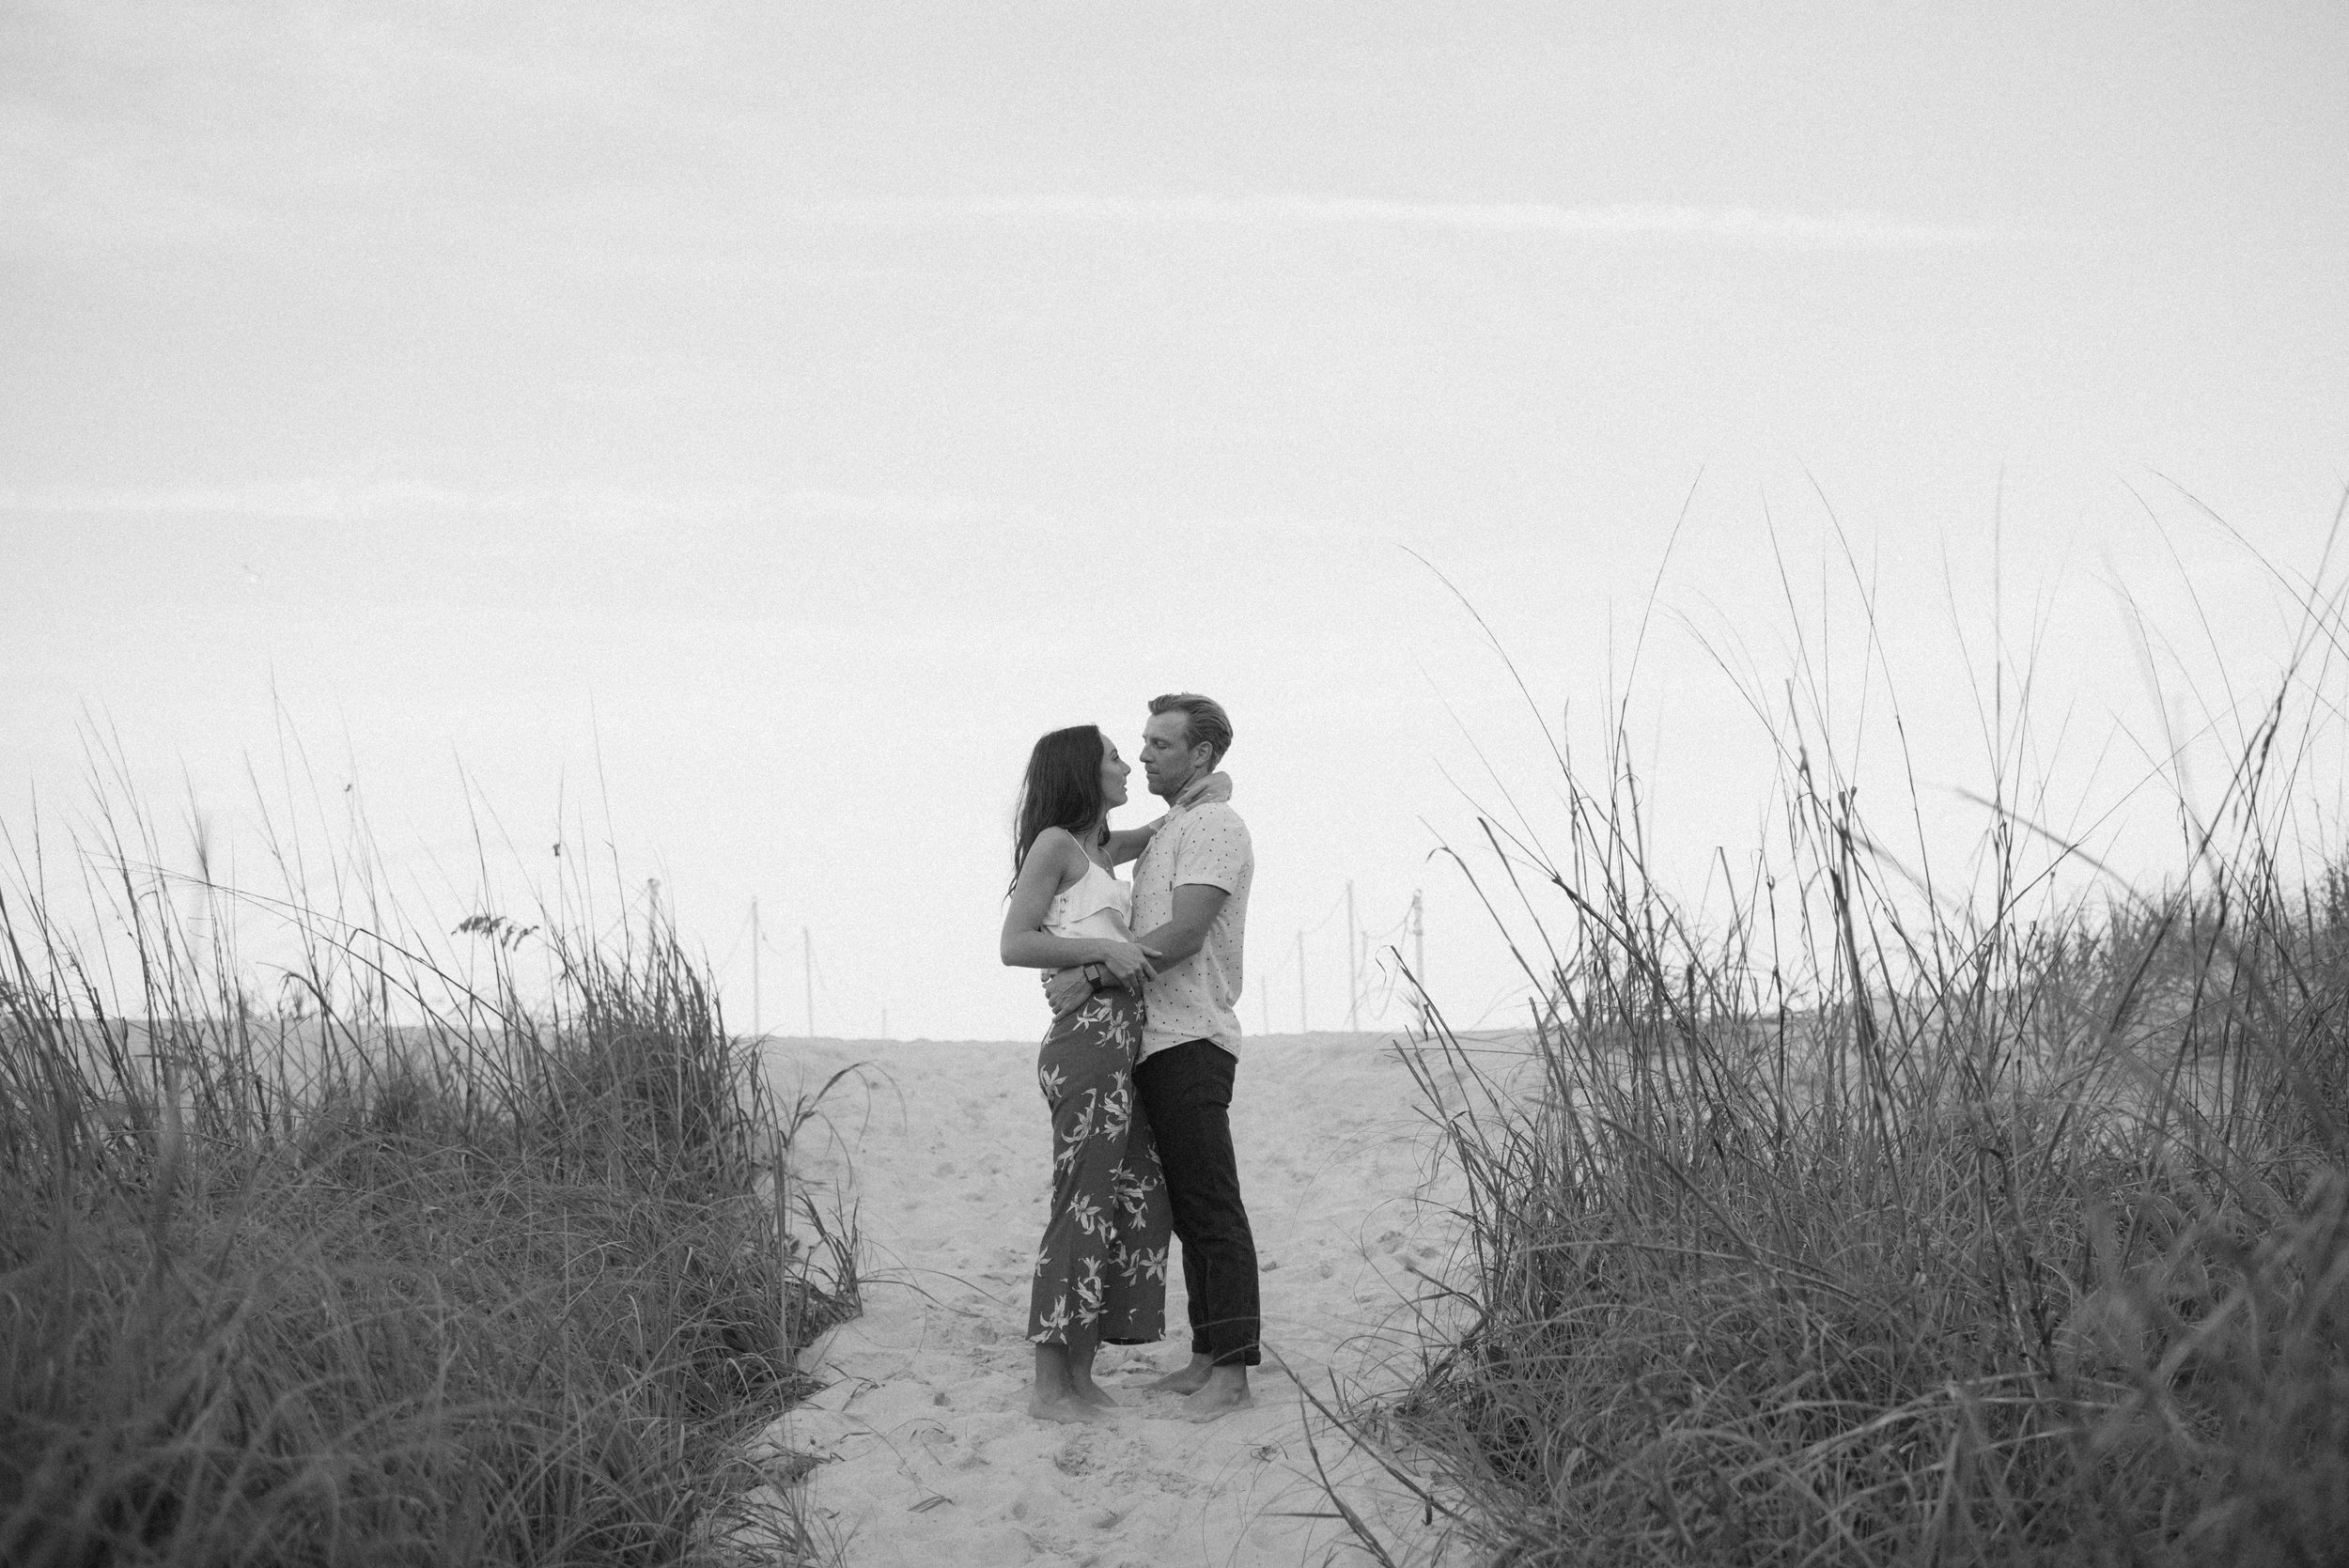 atlantic-beach-engagement-photos-heather-and-cody-89.jpg